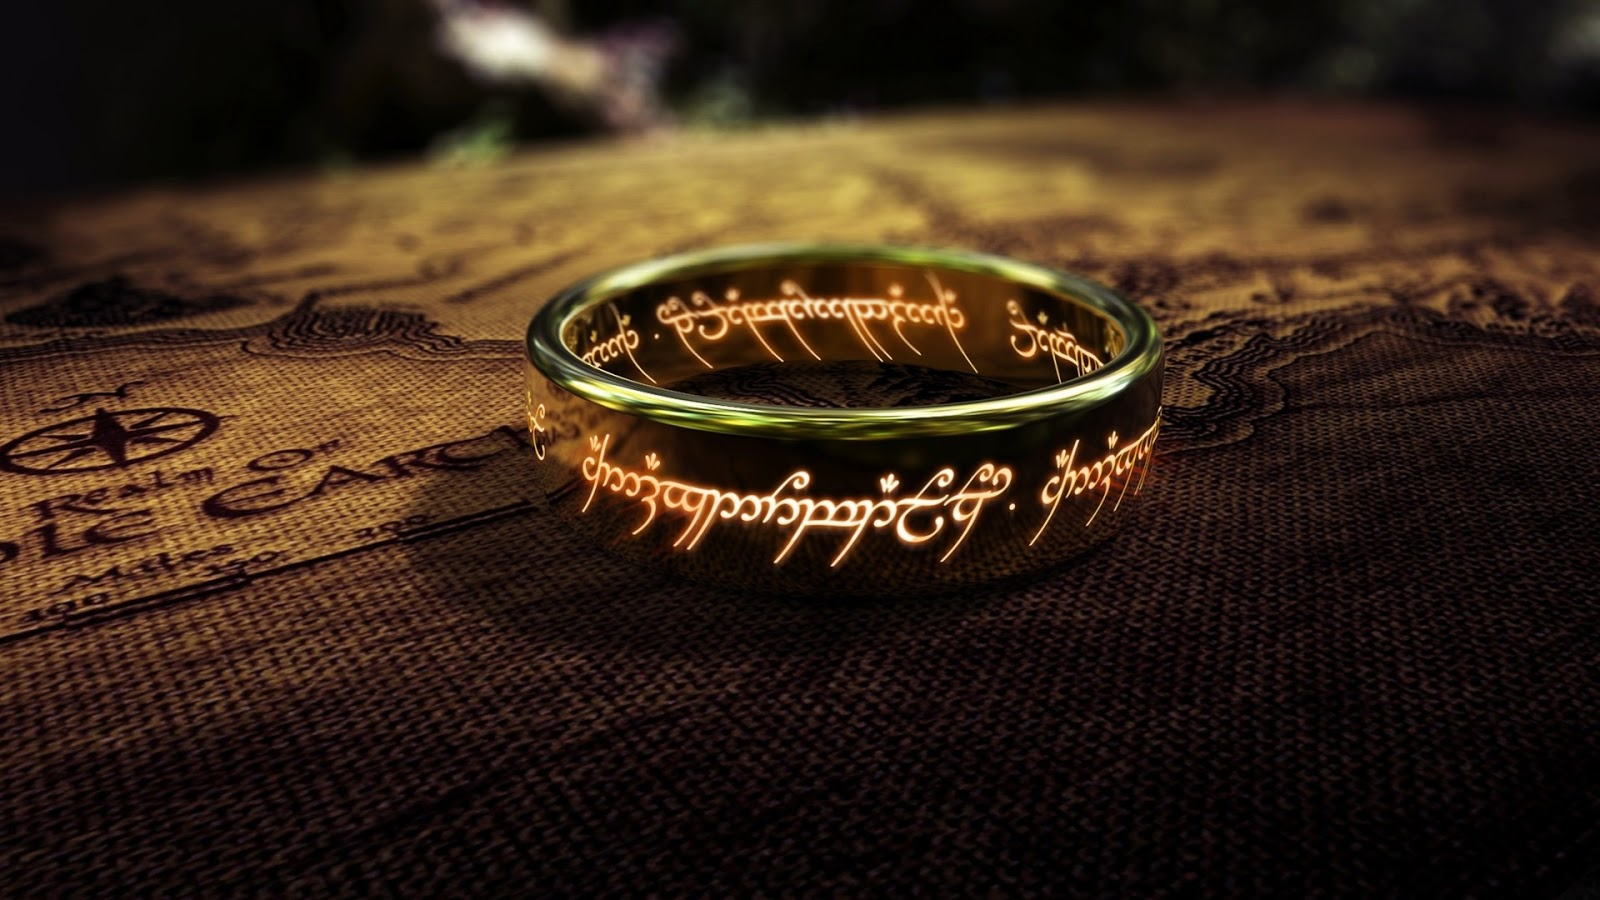 the lord of the rings wallpaper covers heat